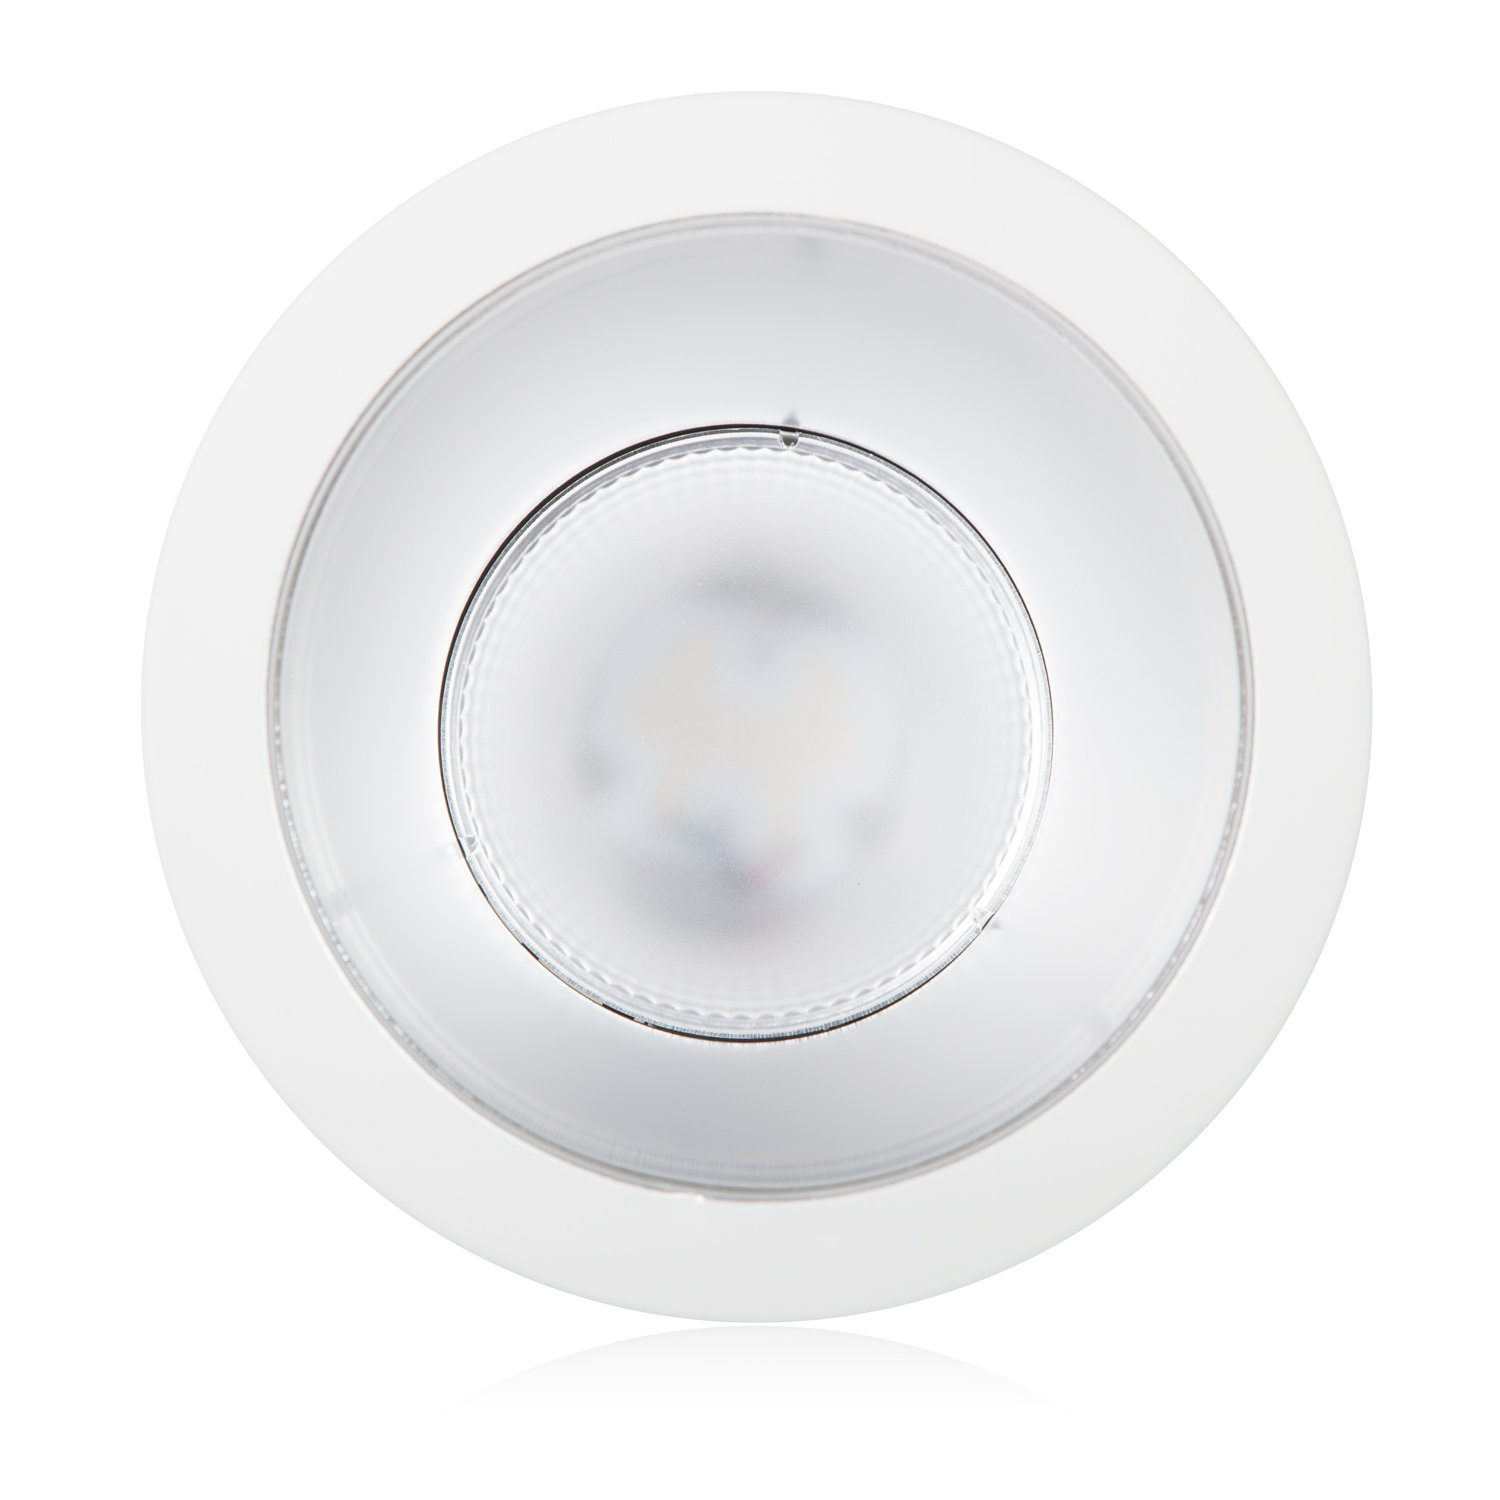 Maxxima 6 in. Commercial Recessed LED Downlight, Dimmable, 18 Watts, 1500 Lumens, 4000K Neutral White, Energy Star, Junction Box Included, Architectural Downlight (2 Pack) by Maxxima (Image #4)